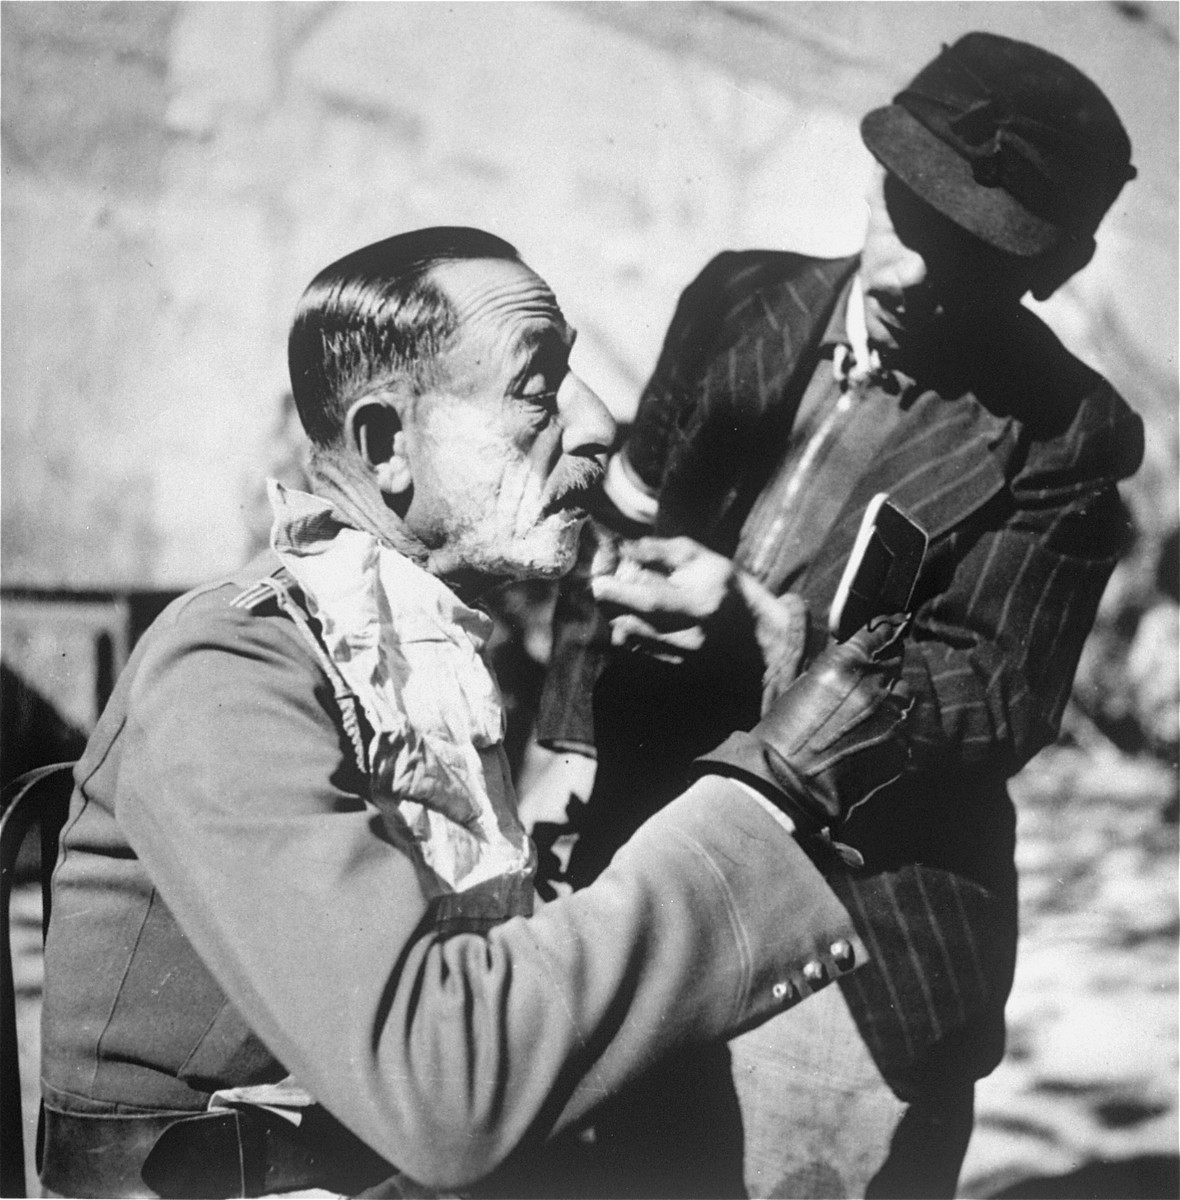 An officer being shaved at an unidentified labor camp in Hungary.